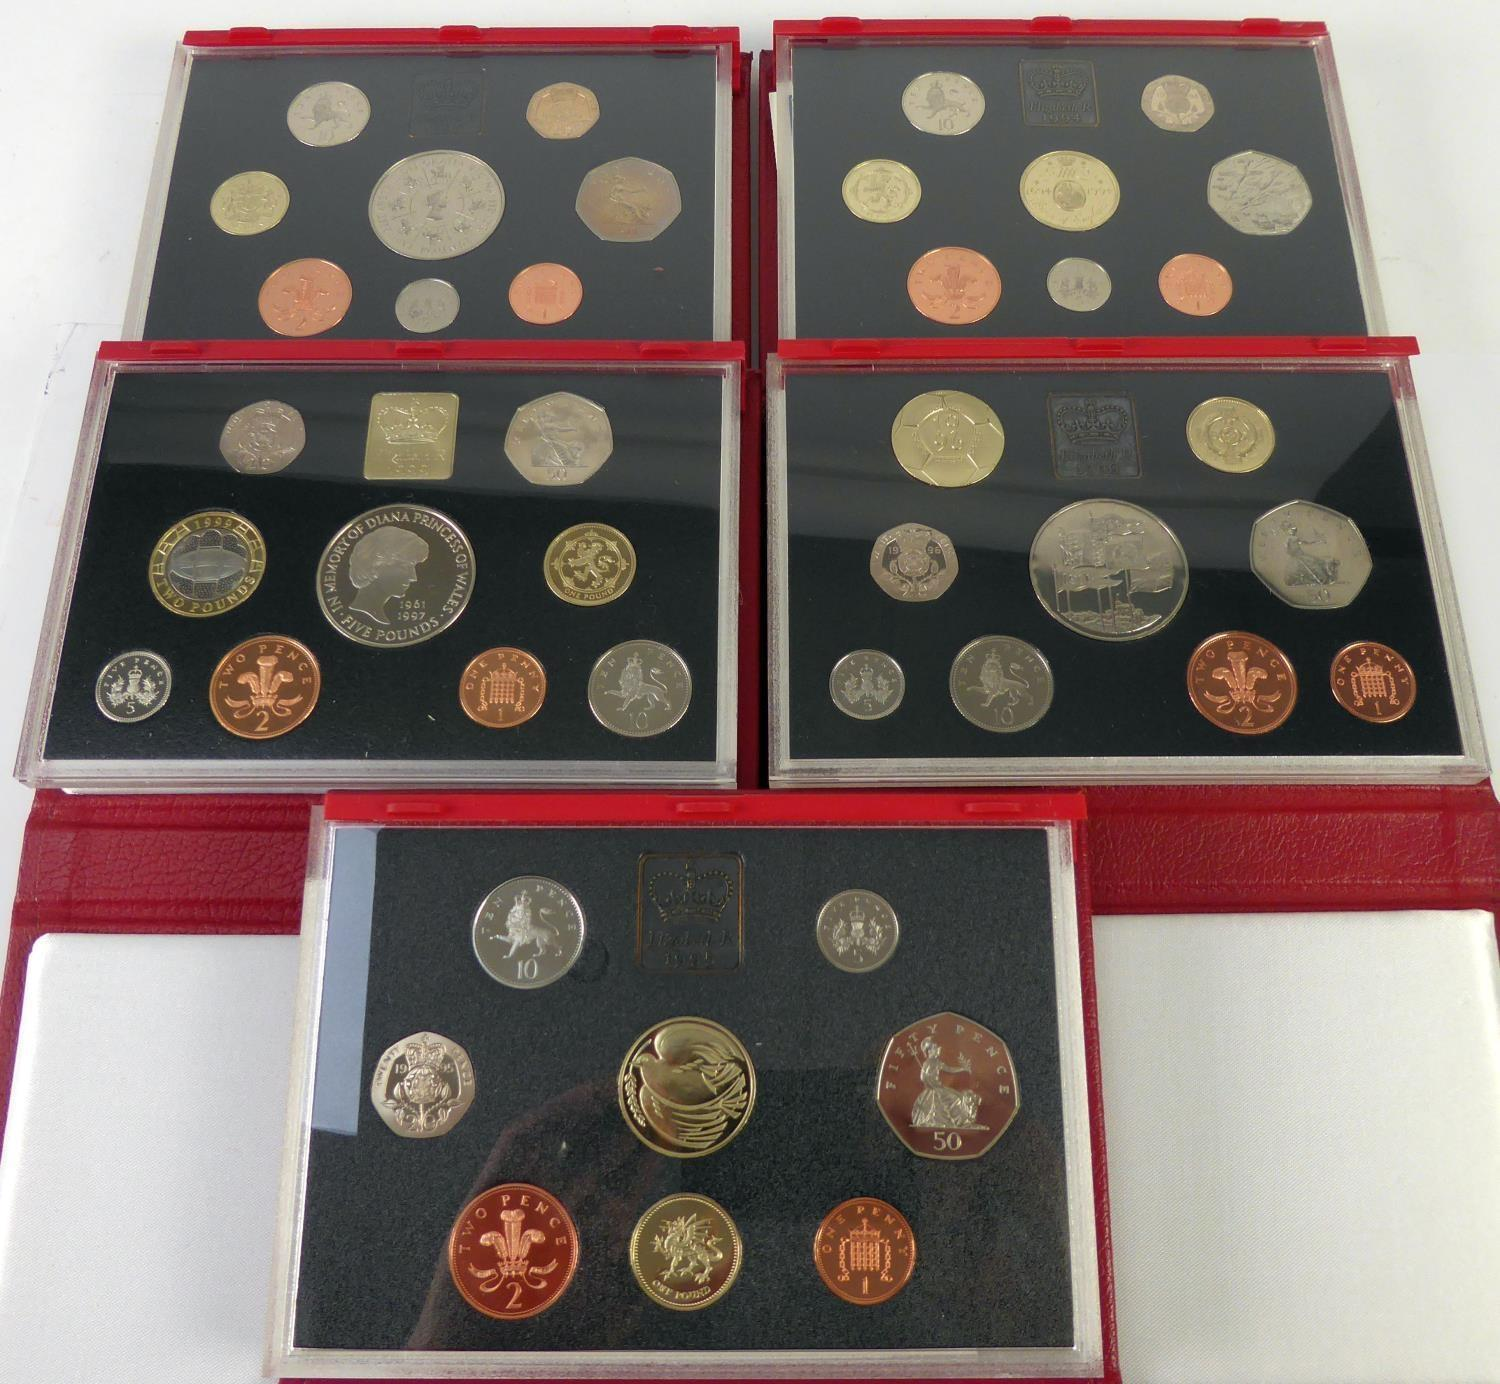 Lot 68 - ROYAL MINT ISSUED COMMEMORATIVE COIN SETS 1990-1999, in original boxes unused (6)